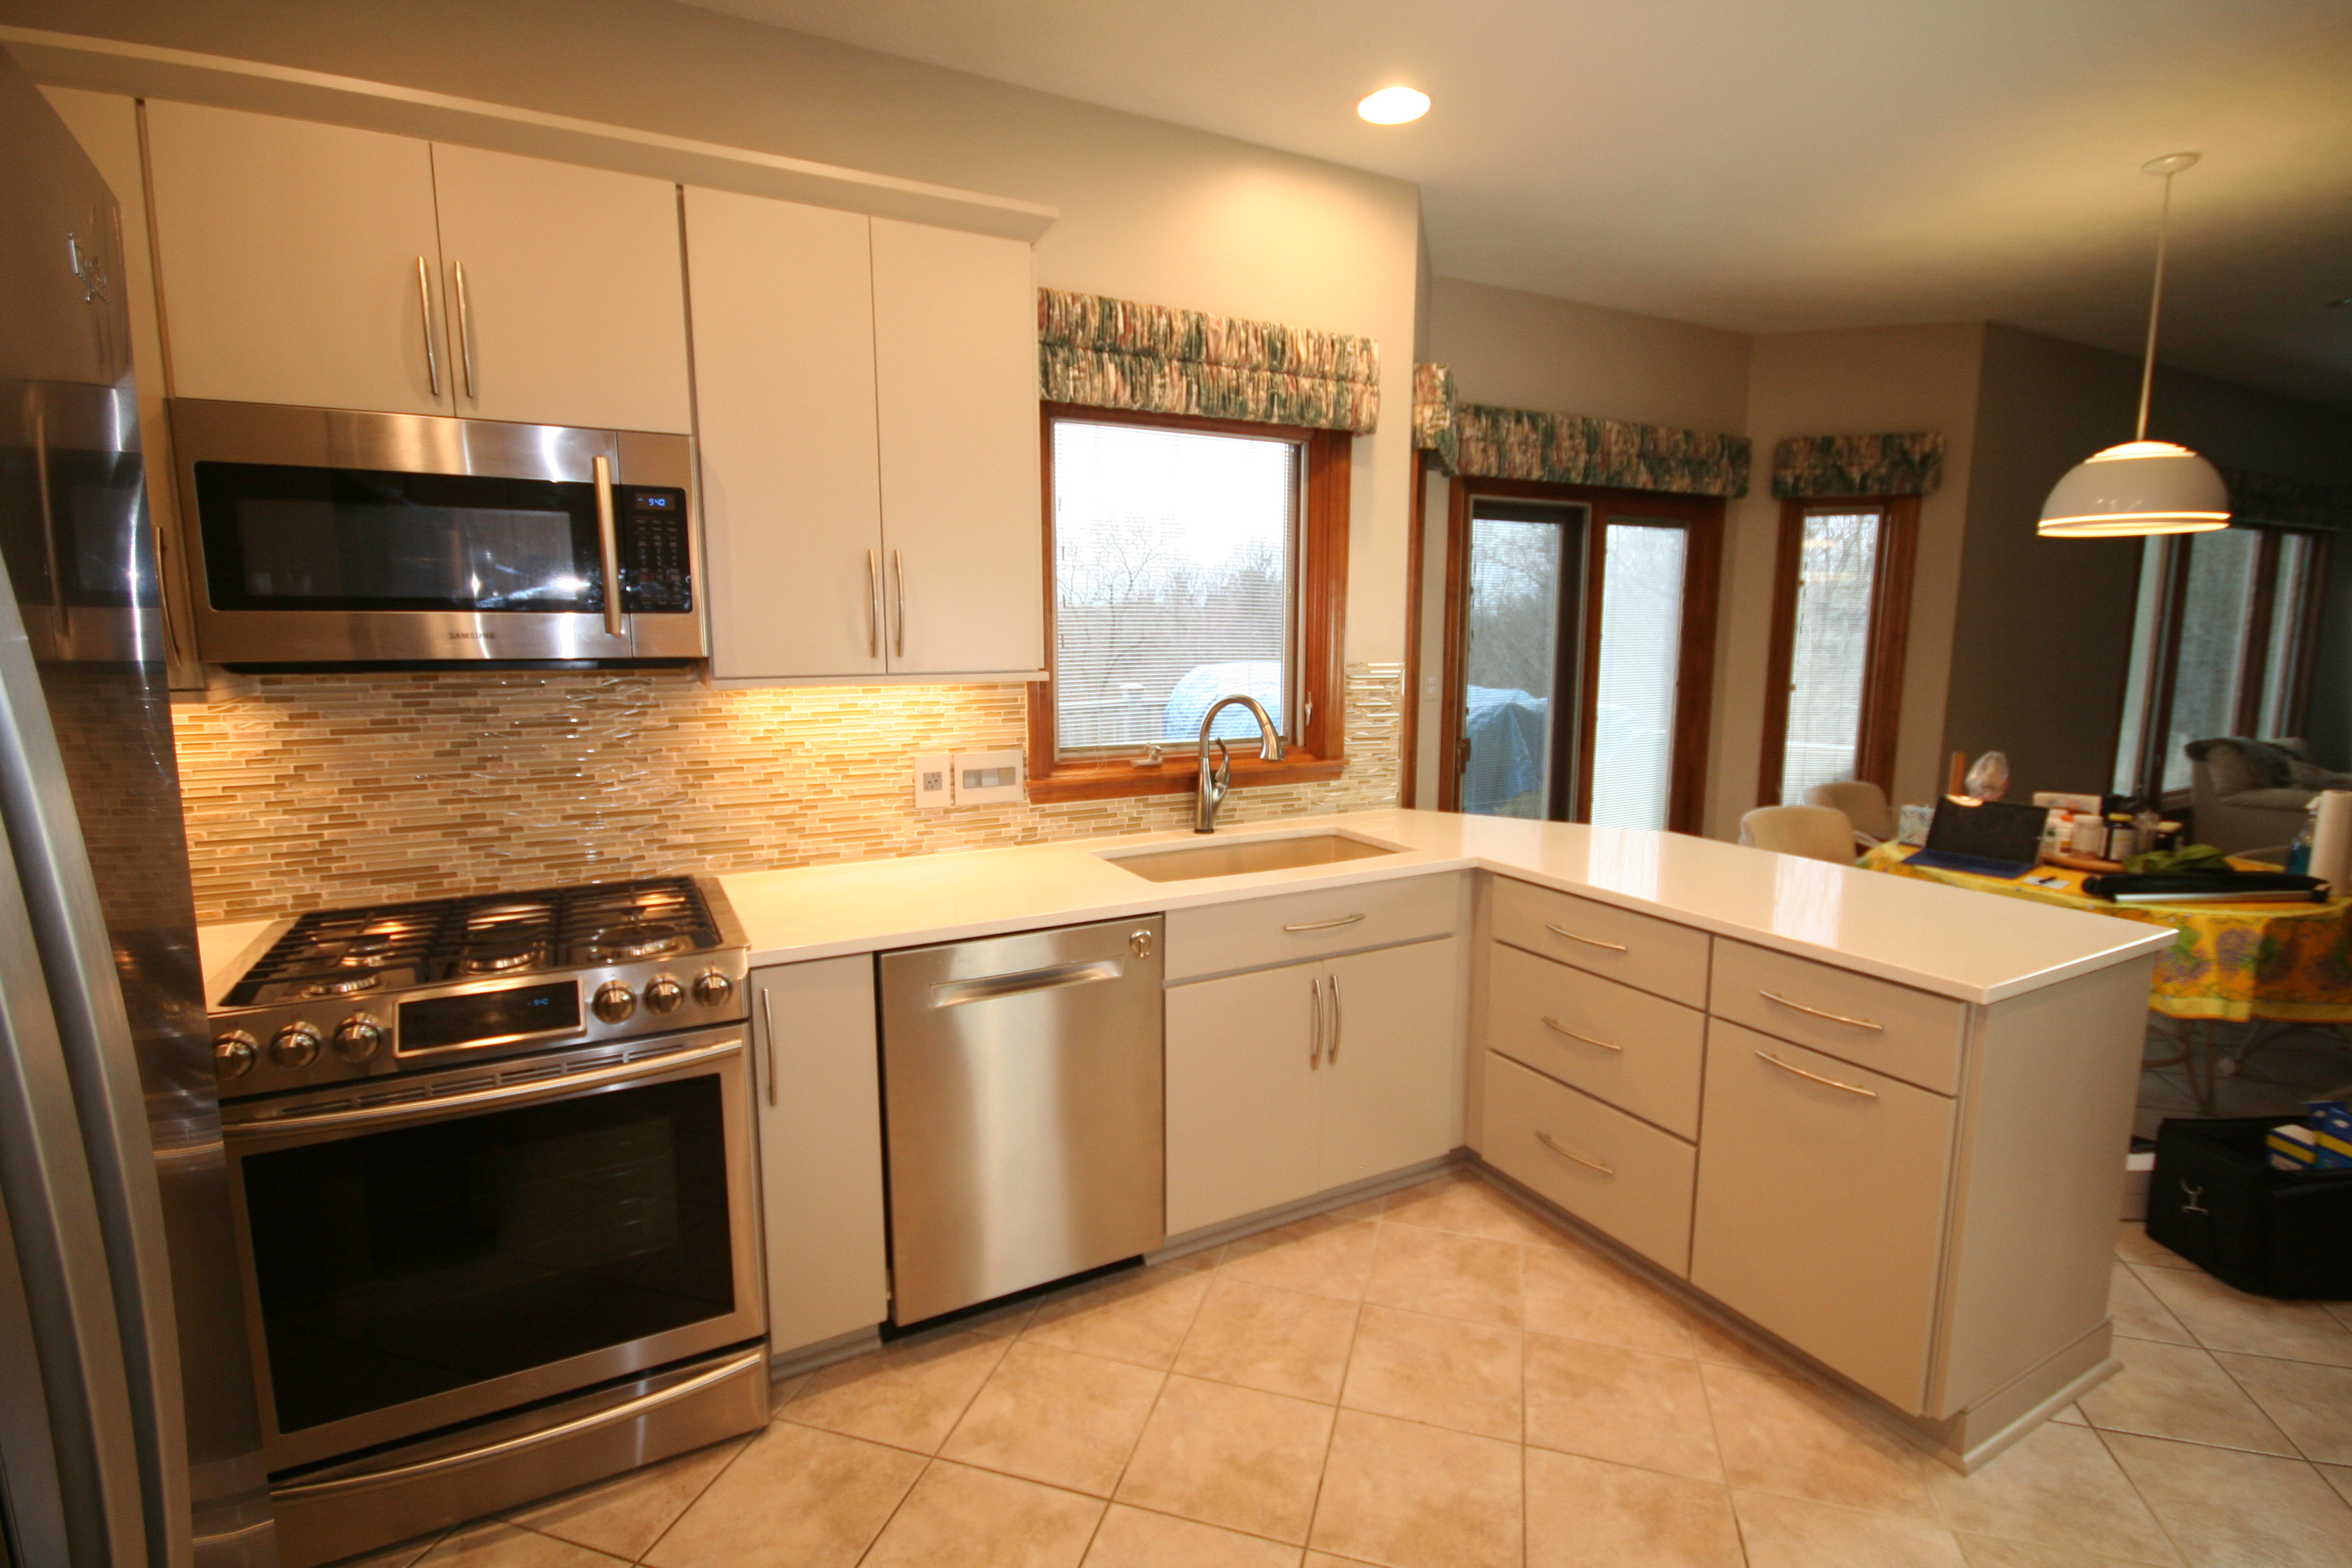 Kitchen Remodel Cranberry Twp Nelson Kitchen Bath Mars PA - Bathroom remodeling cranberry twp pa